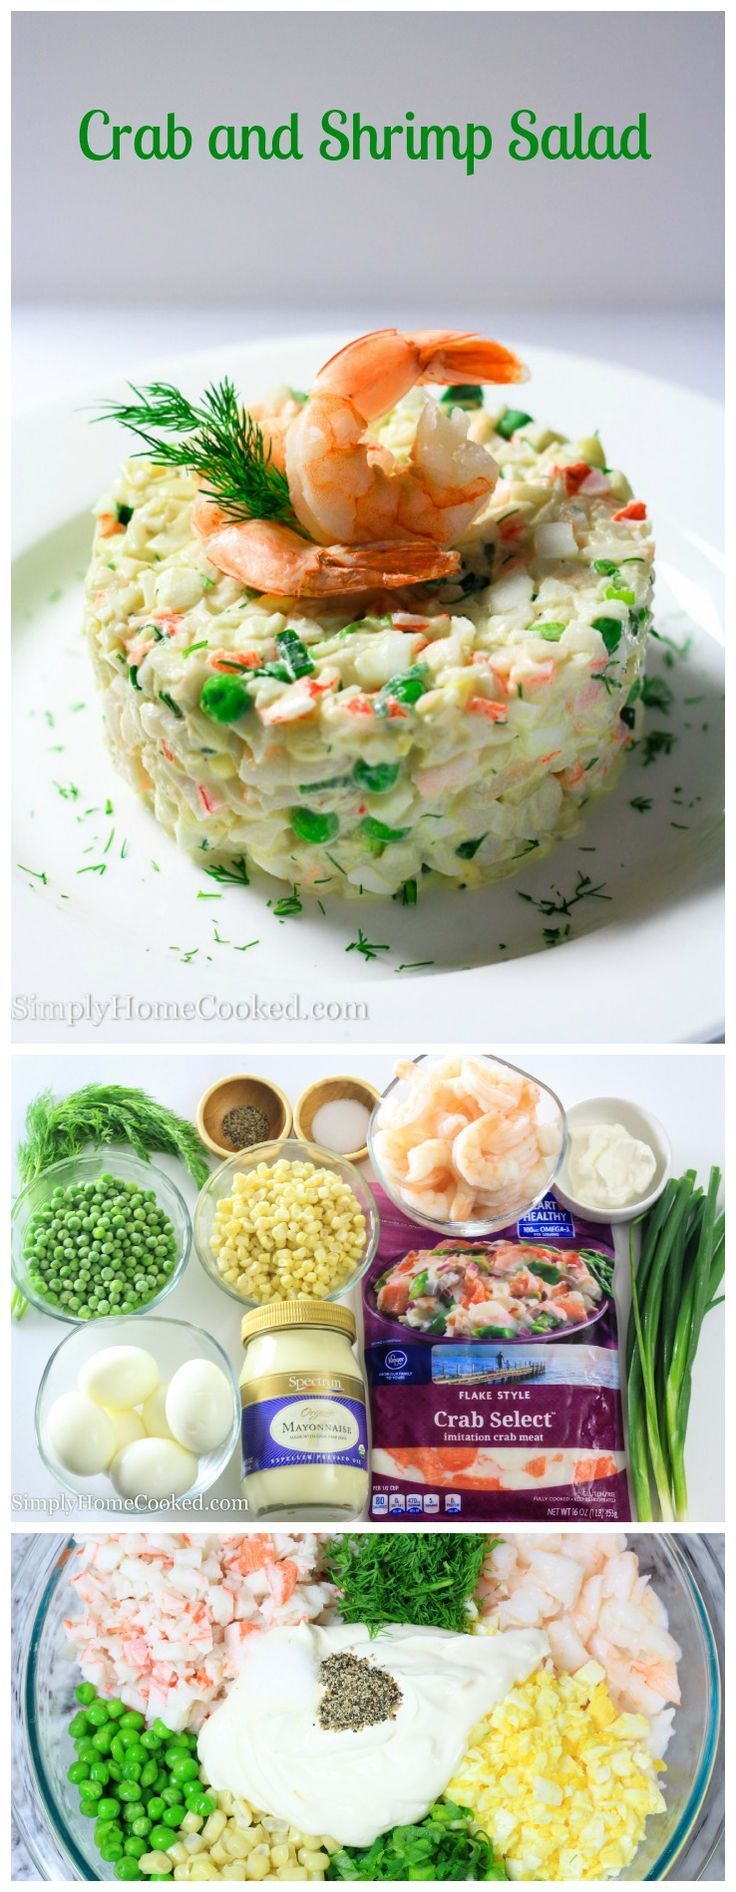 An easy and quick seafood salad with no cooking required.   Simply Home Cooked